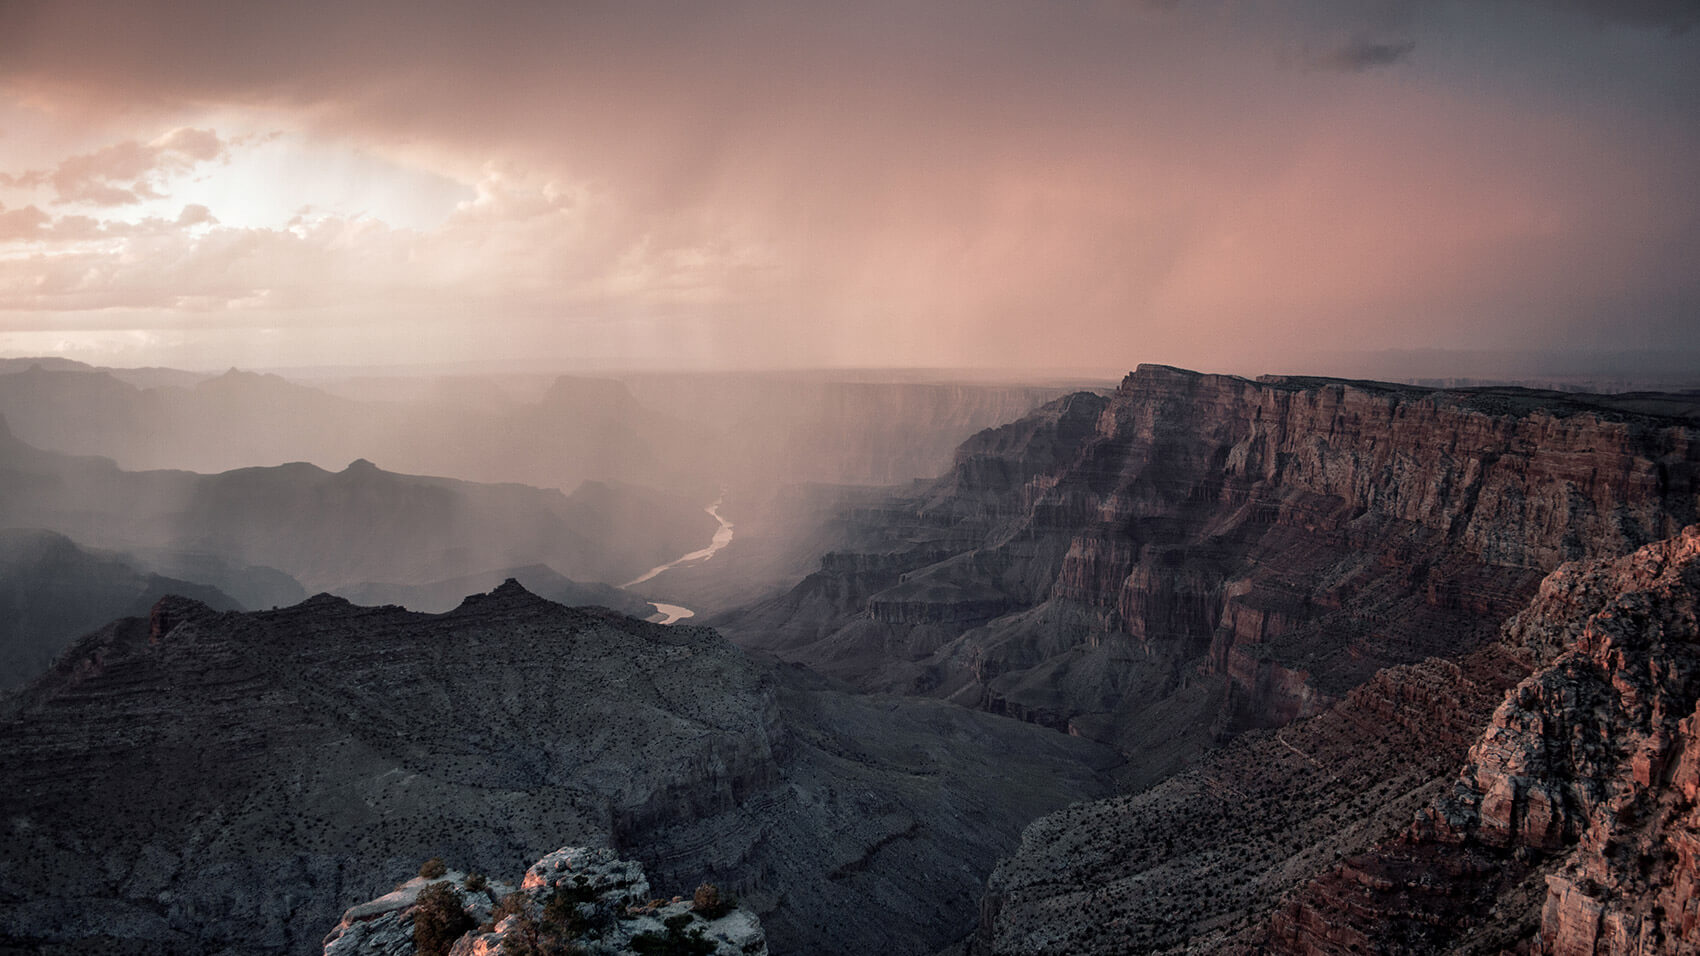 South Rime of the Grand Canyon at sunset with Colorado river in the background